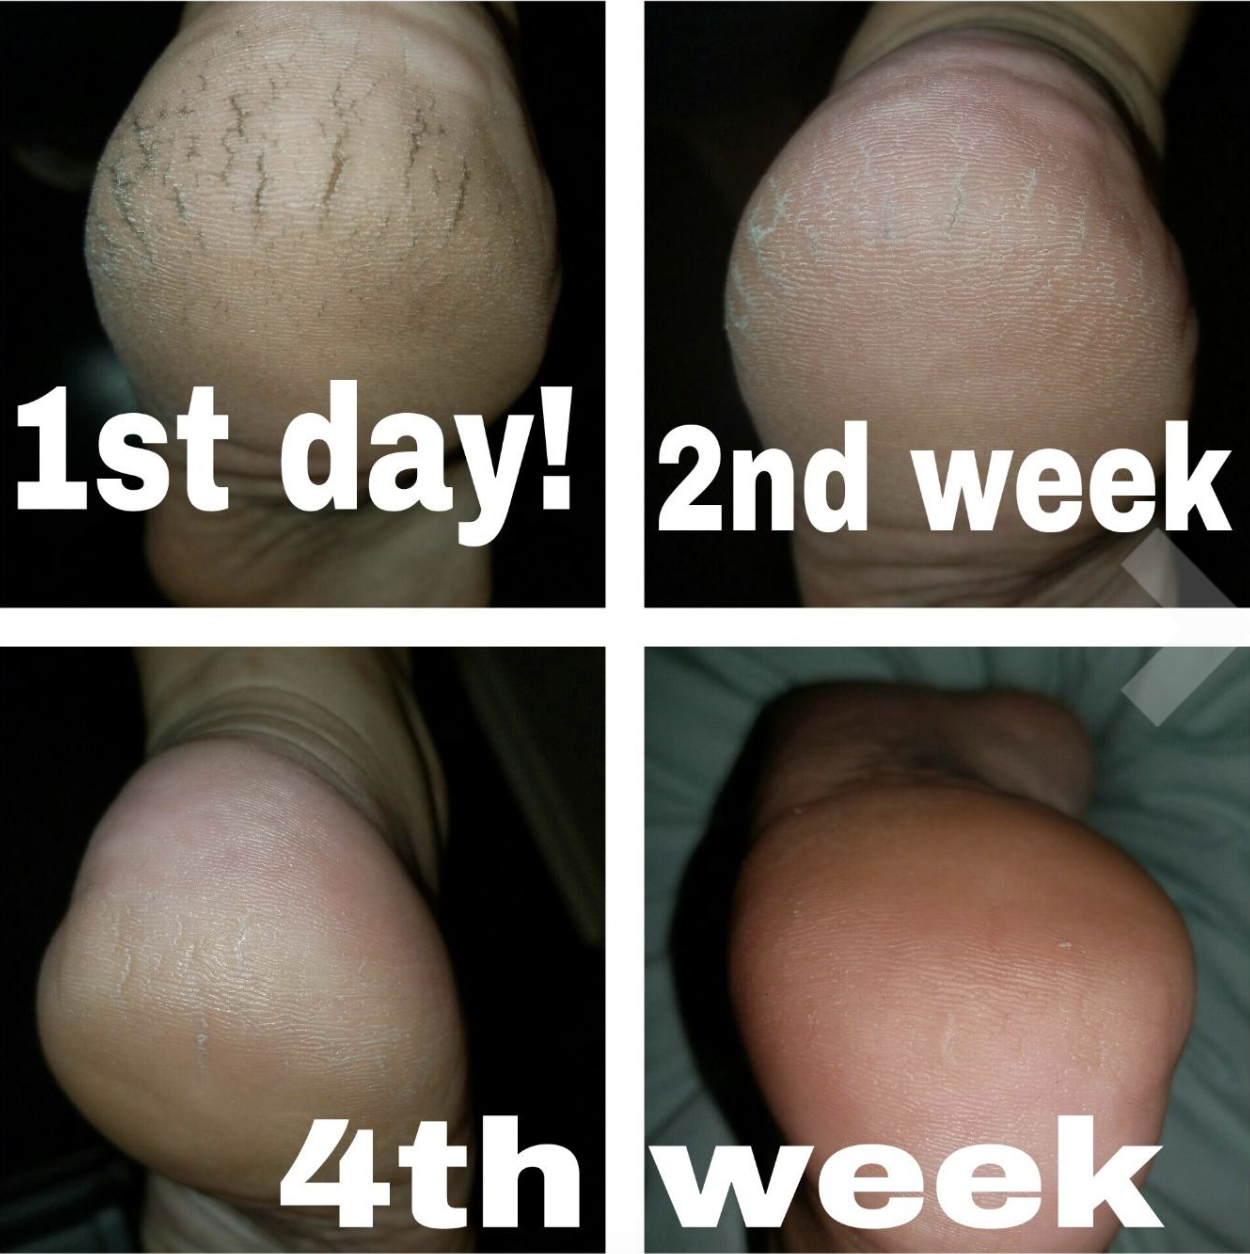 Images of a reviewer's dry, cracked heel on day one with improvements by the second week and a smooth heel by the fourth week